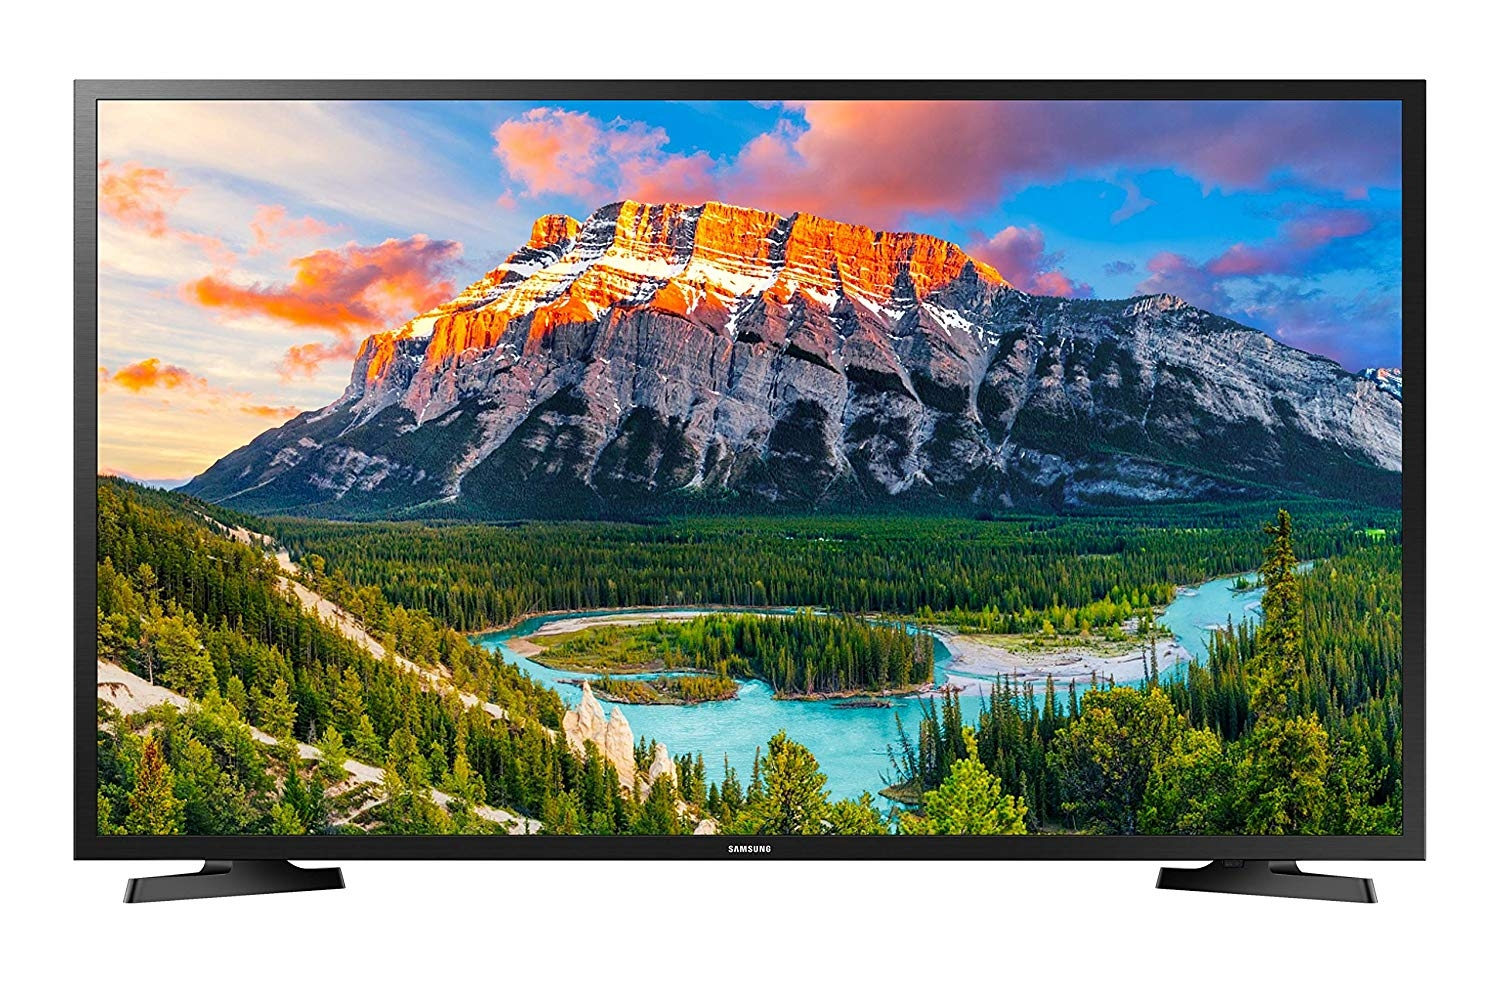 Samsung 123 cm (49 inches) 5 Series UA49N5100AR Full HD LED TV (Black)